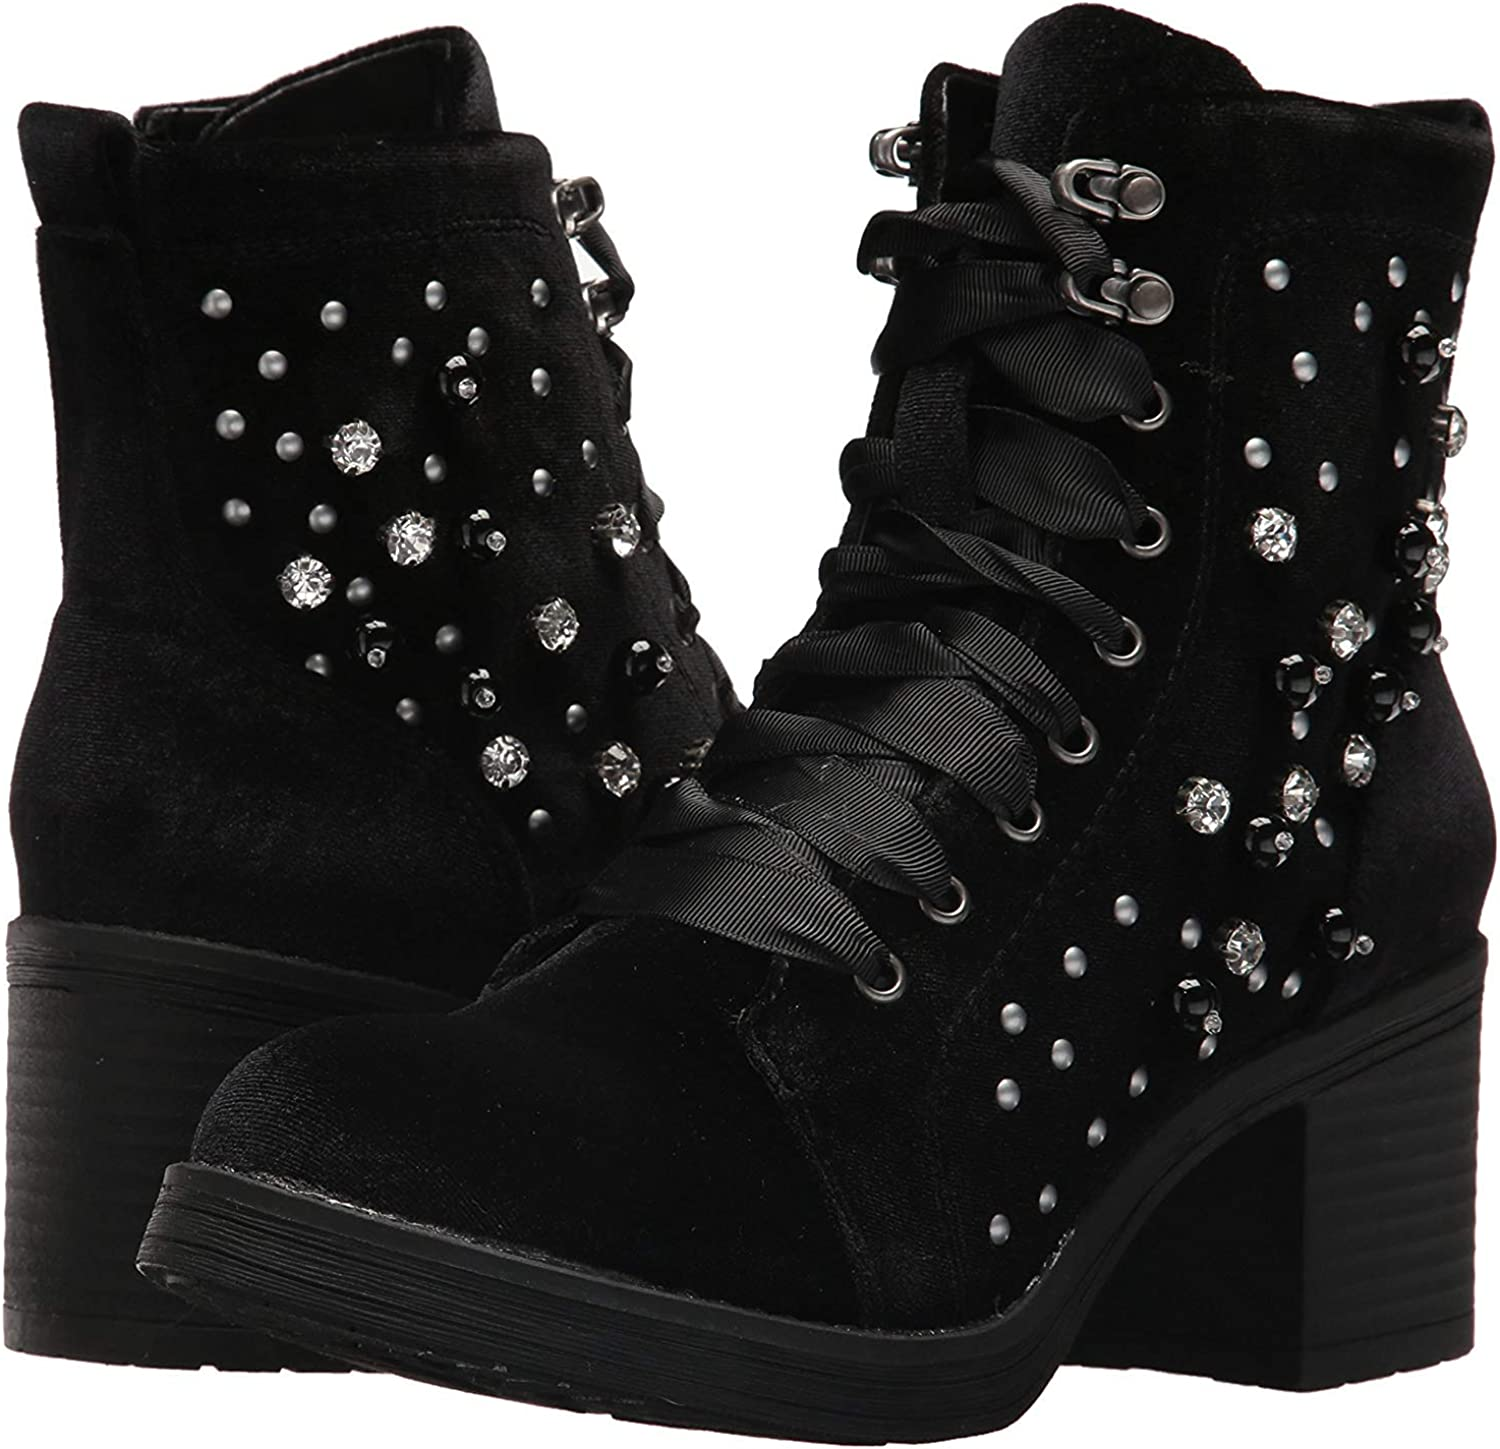 Madden girl Womens Verra Closed Toe Ankle Fashion Boots